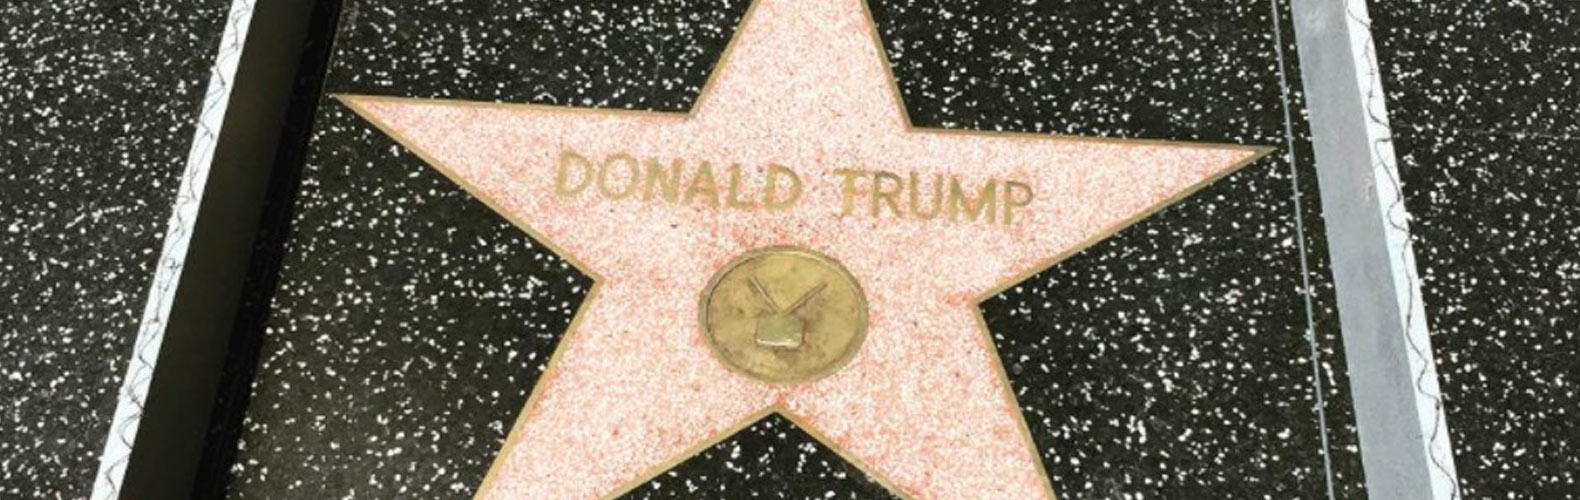 Donald Trump, election, hollywood, hollywood star, hollywood walk of fame, nominee, president, republican, Trump, united states, wall